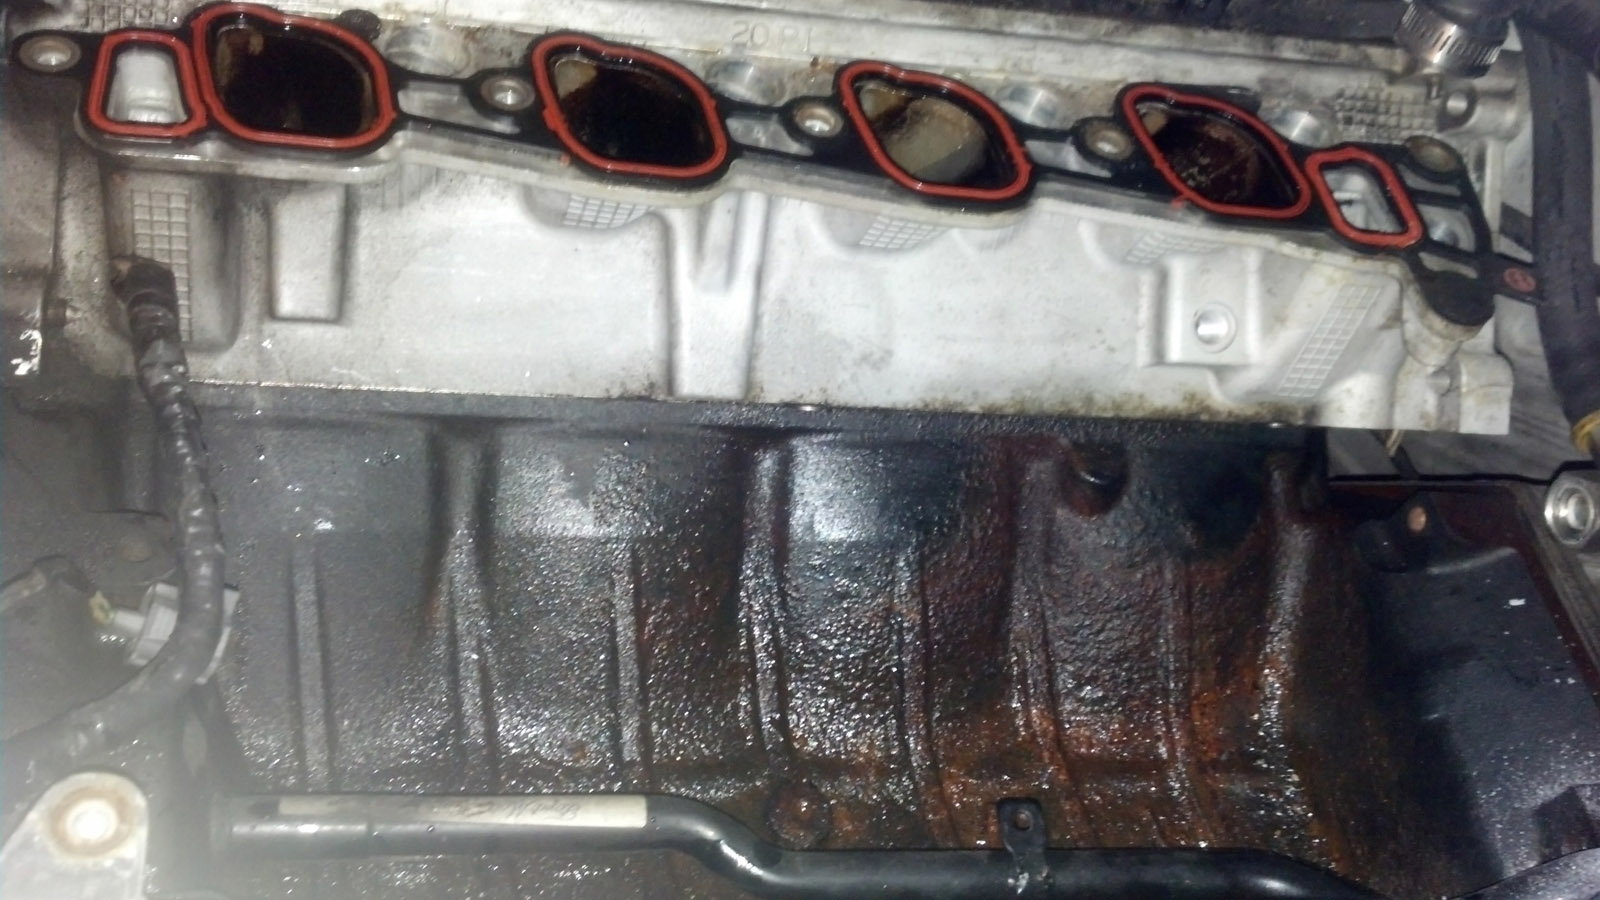 Ford F150 F250: What is that Burning Smell? - Ford-Trucks